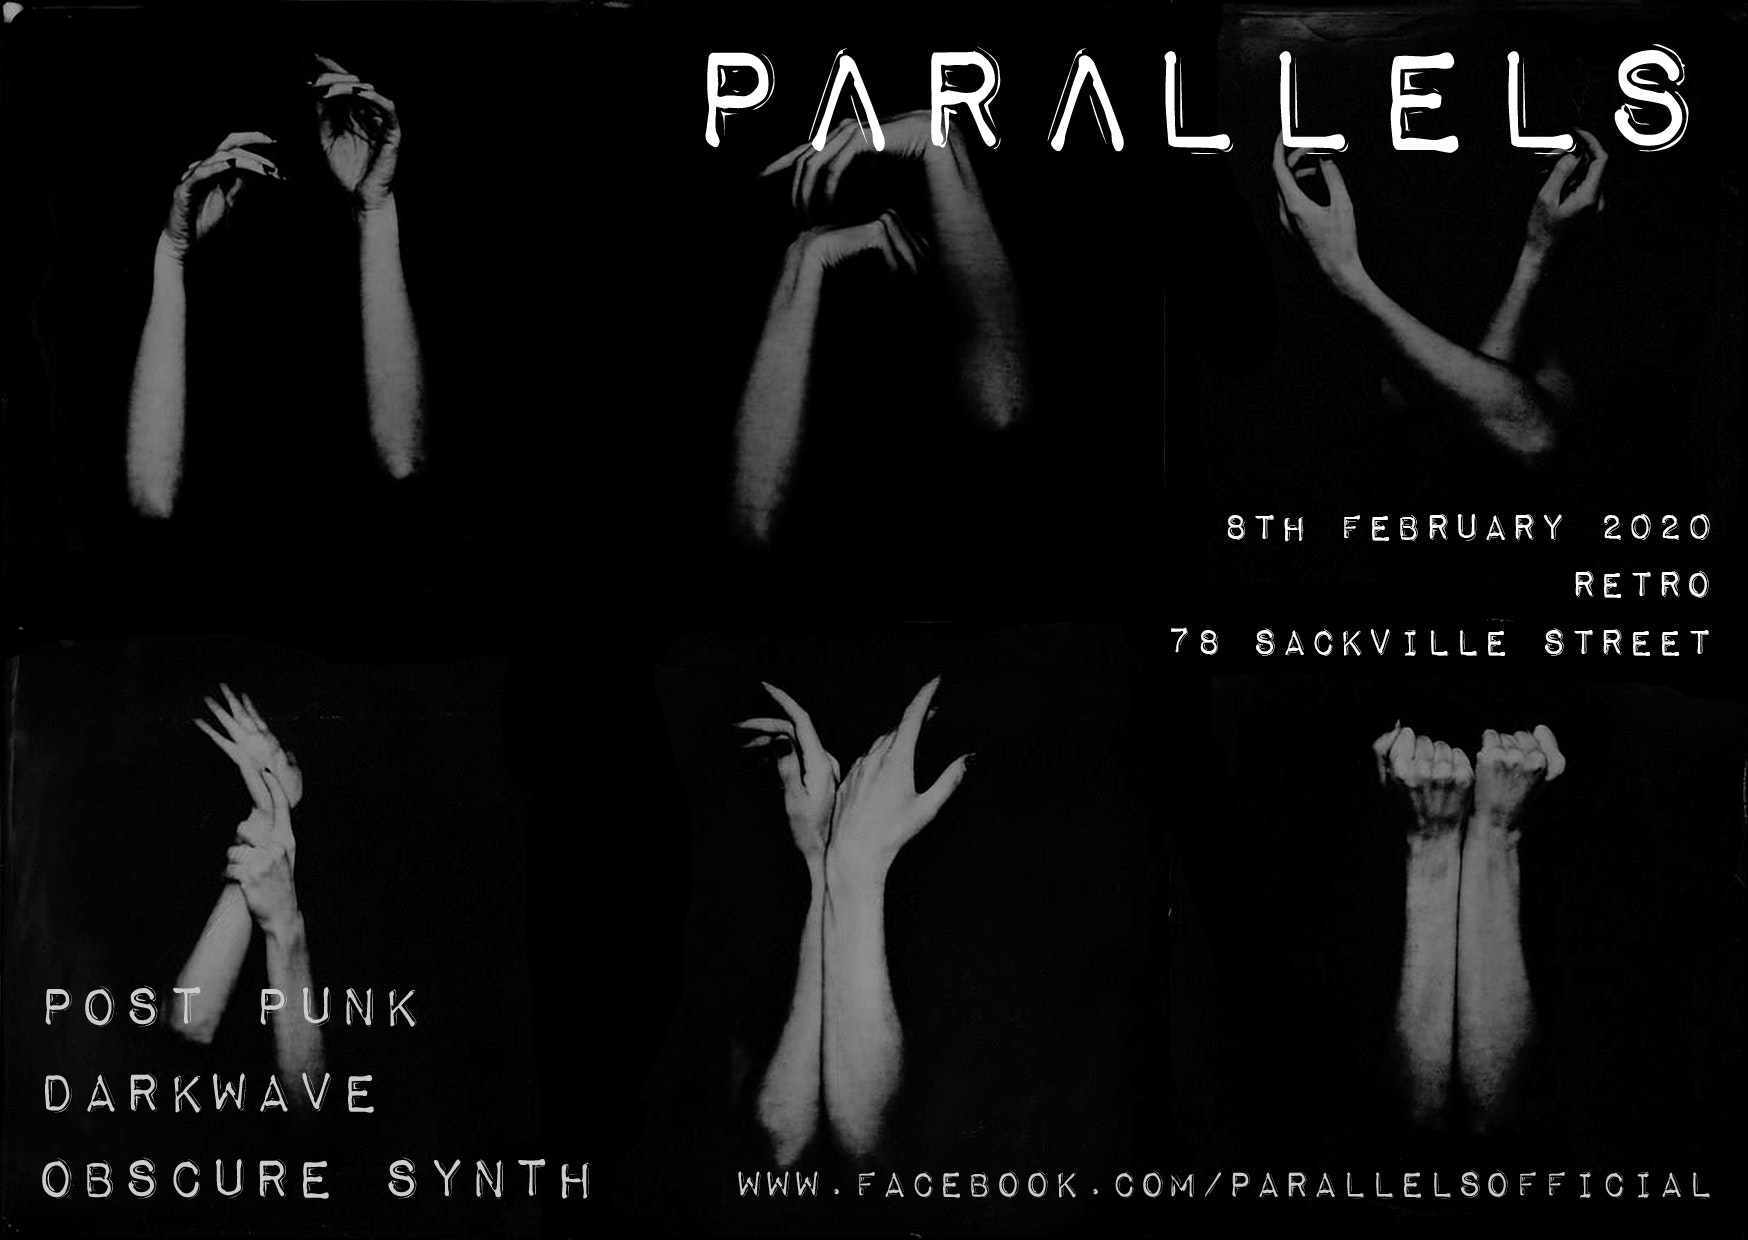 PΛRΛLLELS presents: one night of post punk, darkwave & synth